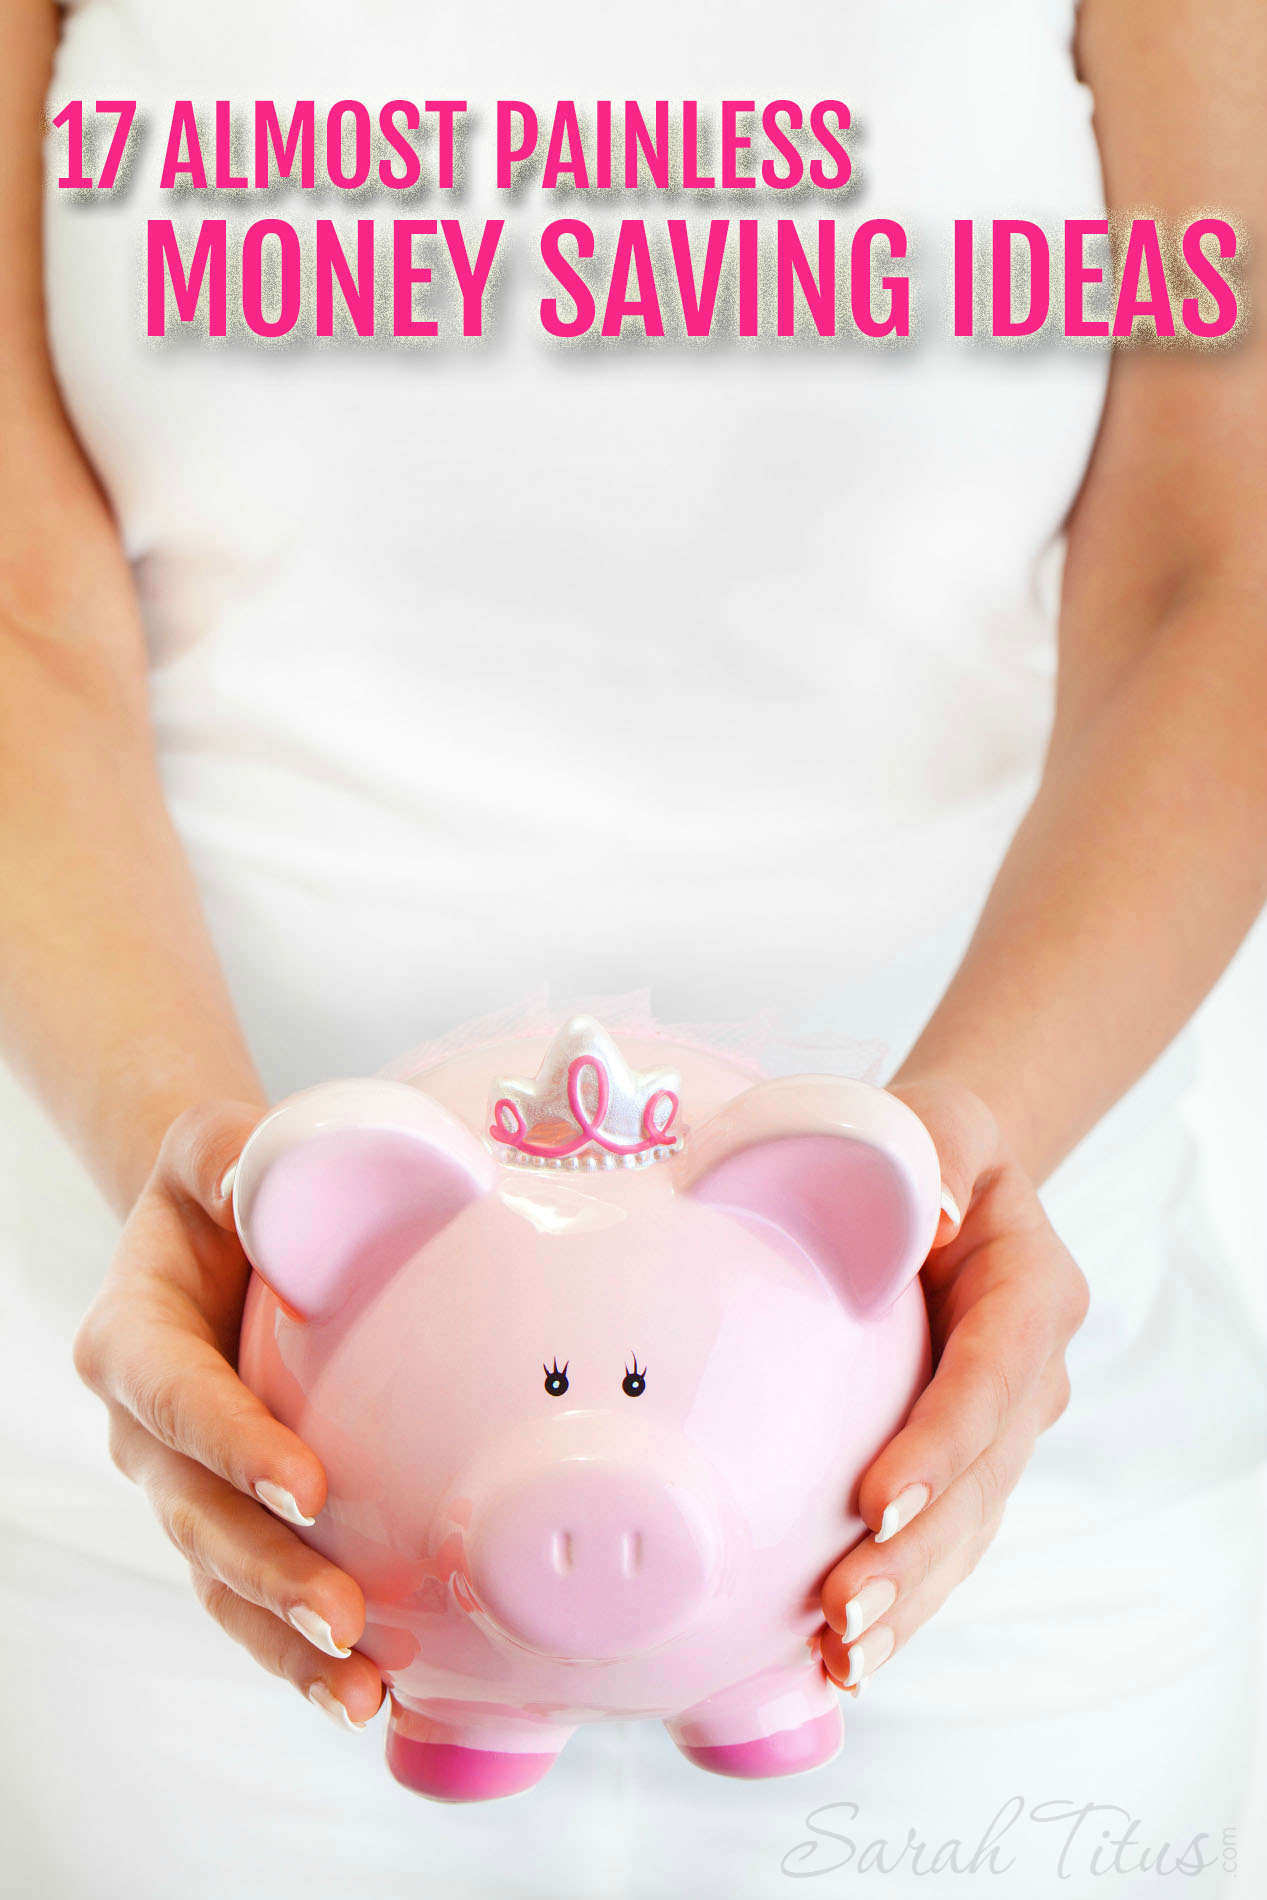 Saving money doesn't mean sacrificing everything. A couple small changes can save a lot! How many of these almost painless money saving ideas have you done?